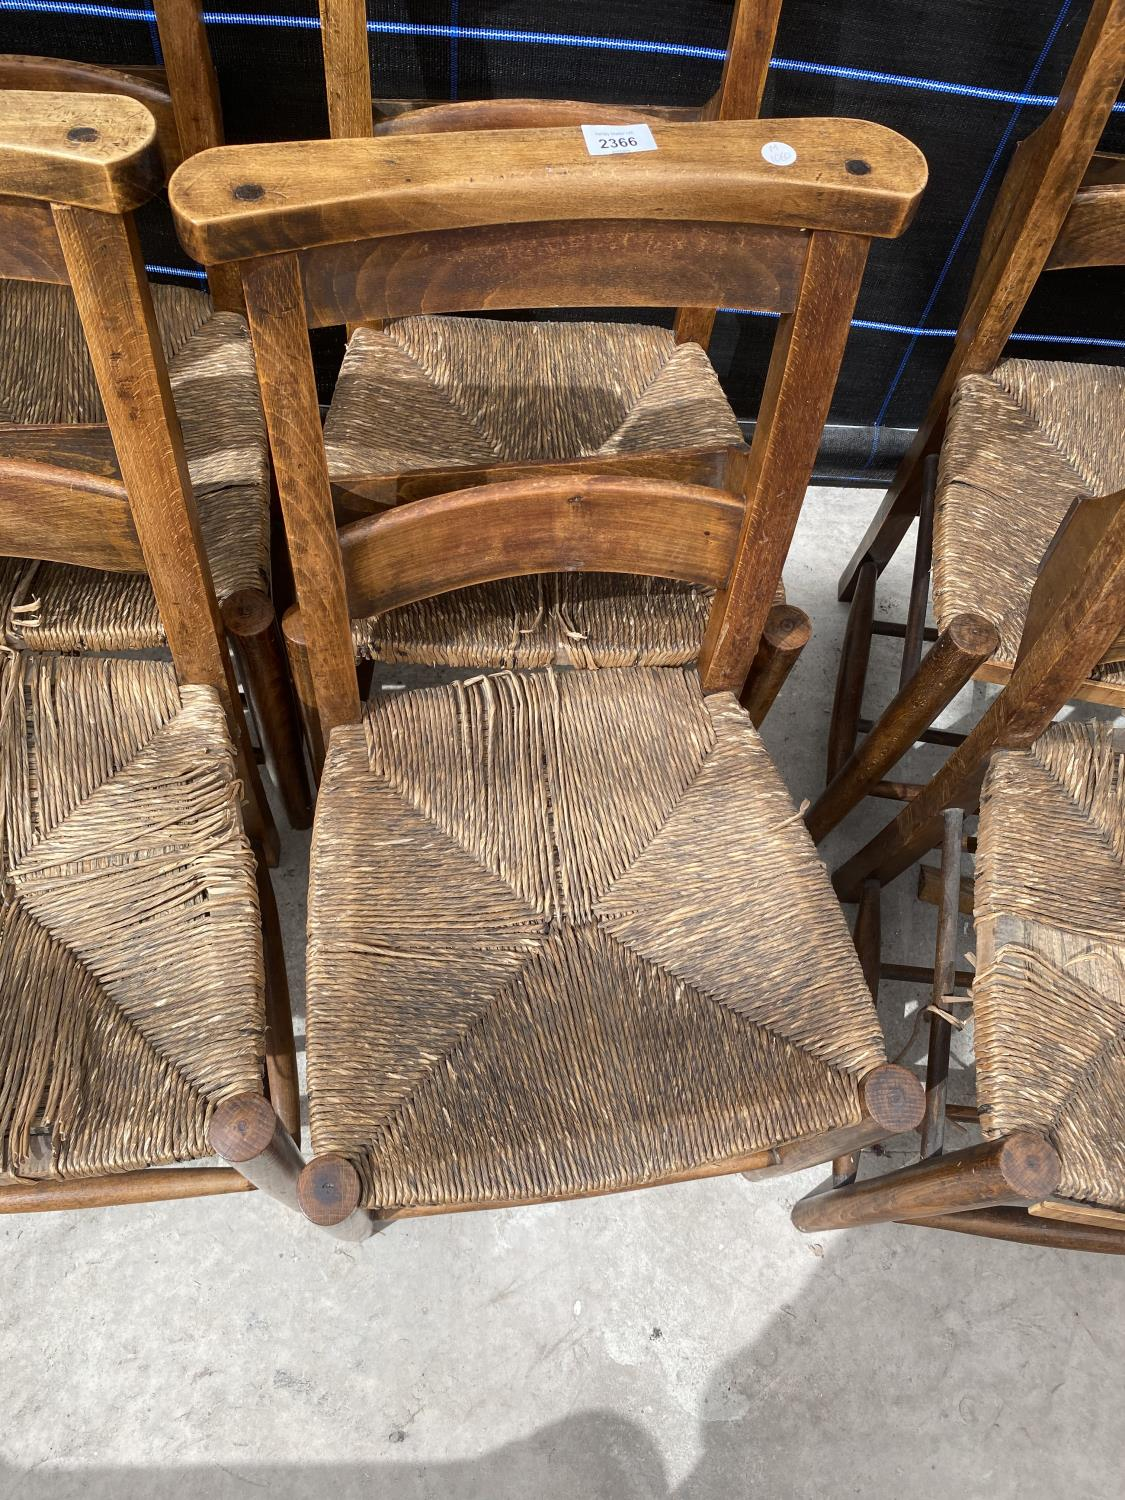 FOUR BEECH FRAMED CHAPEL CHAIRS WITH RUSH SEATS - Image 3 of 5